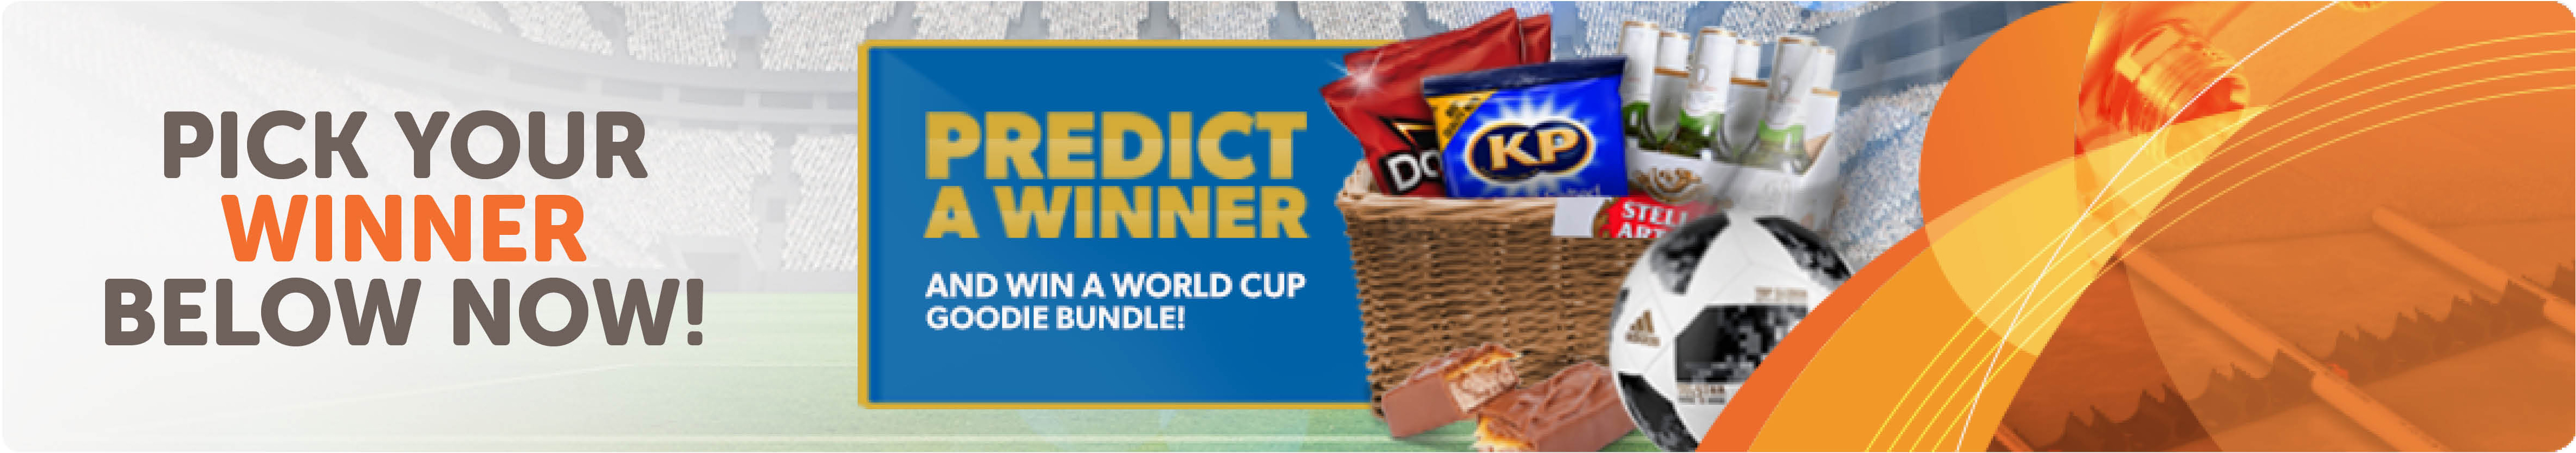 Worldcup competition banner